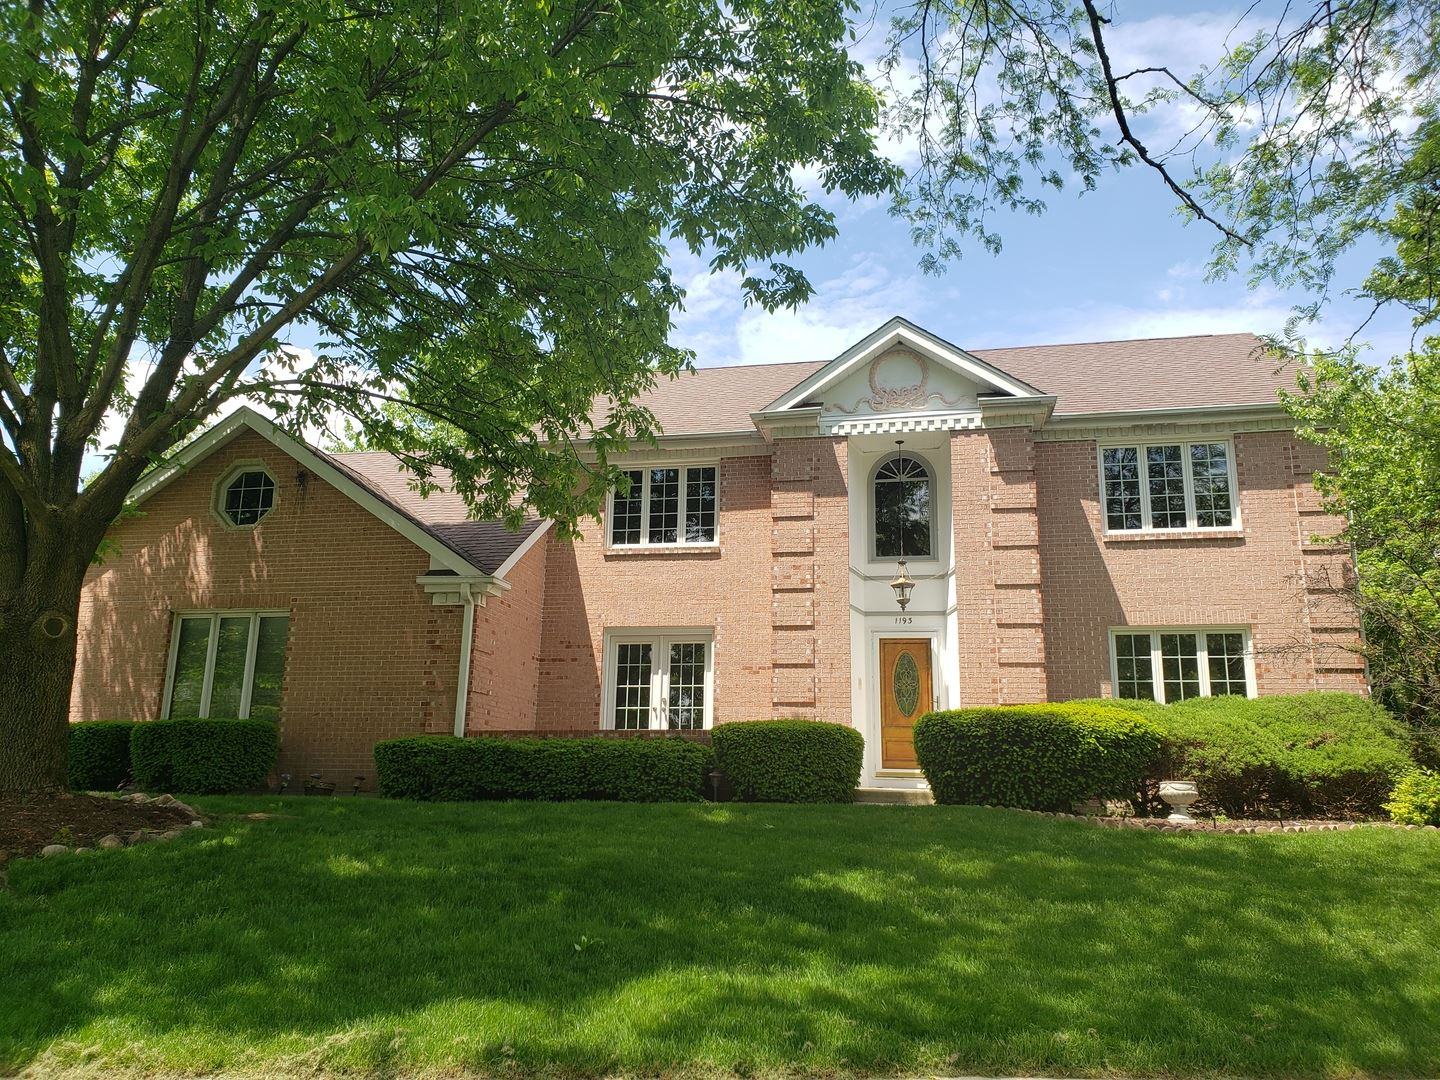 1193 Johnson Drive, Naperville, IL 60540 - #: 10632695